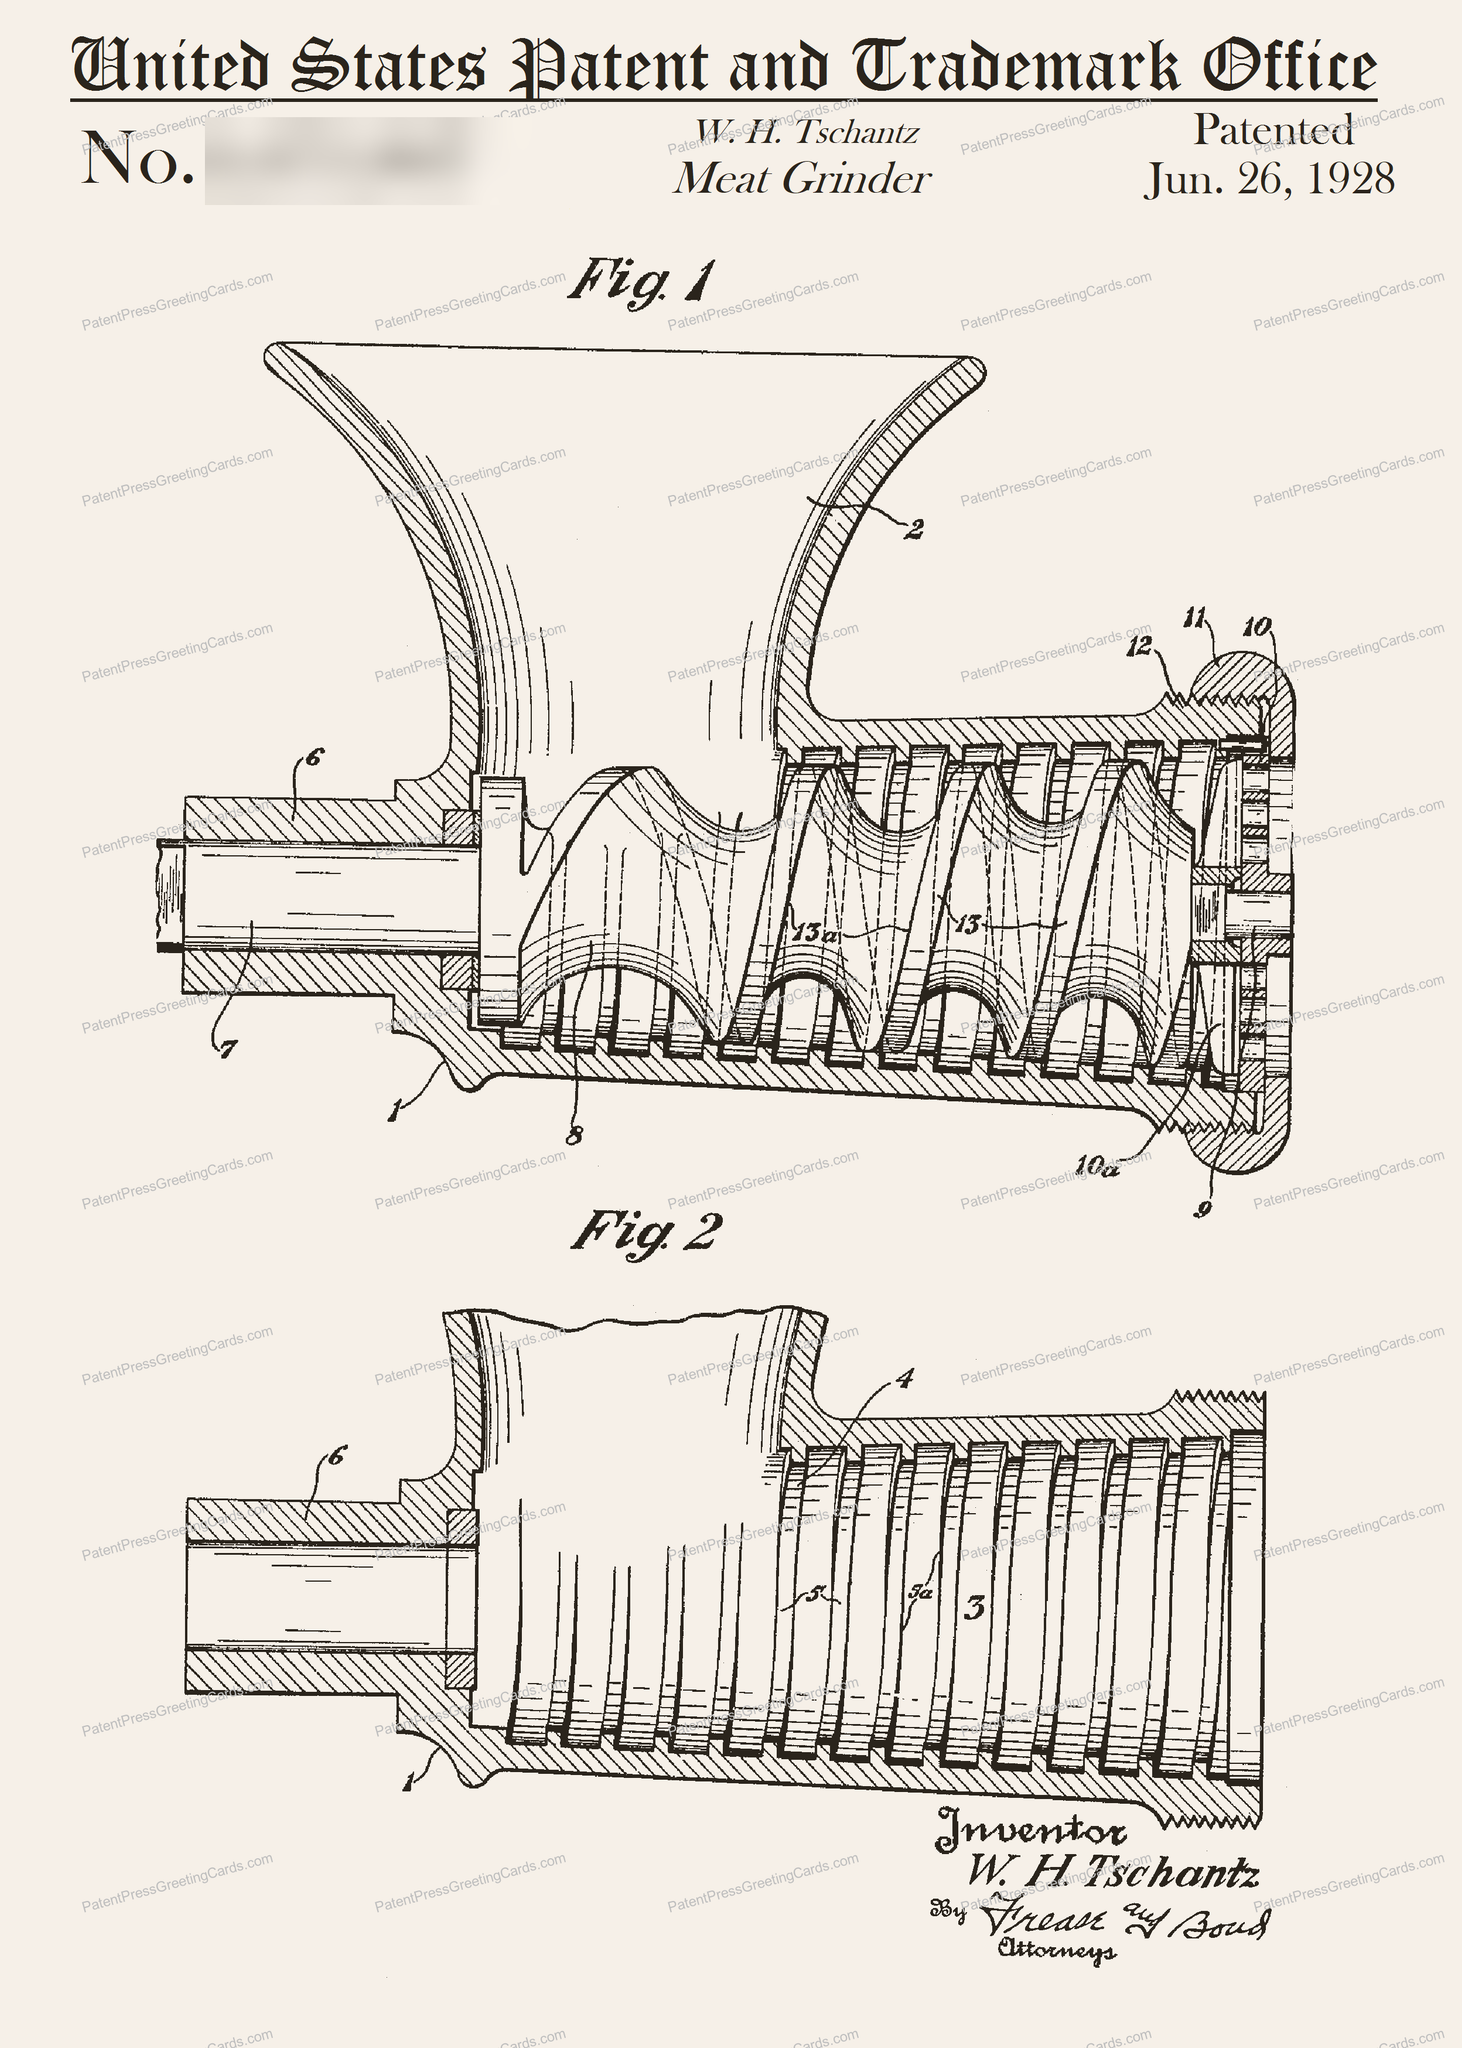 CARD-288: Meat Grinder - Patent Press™